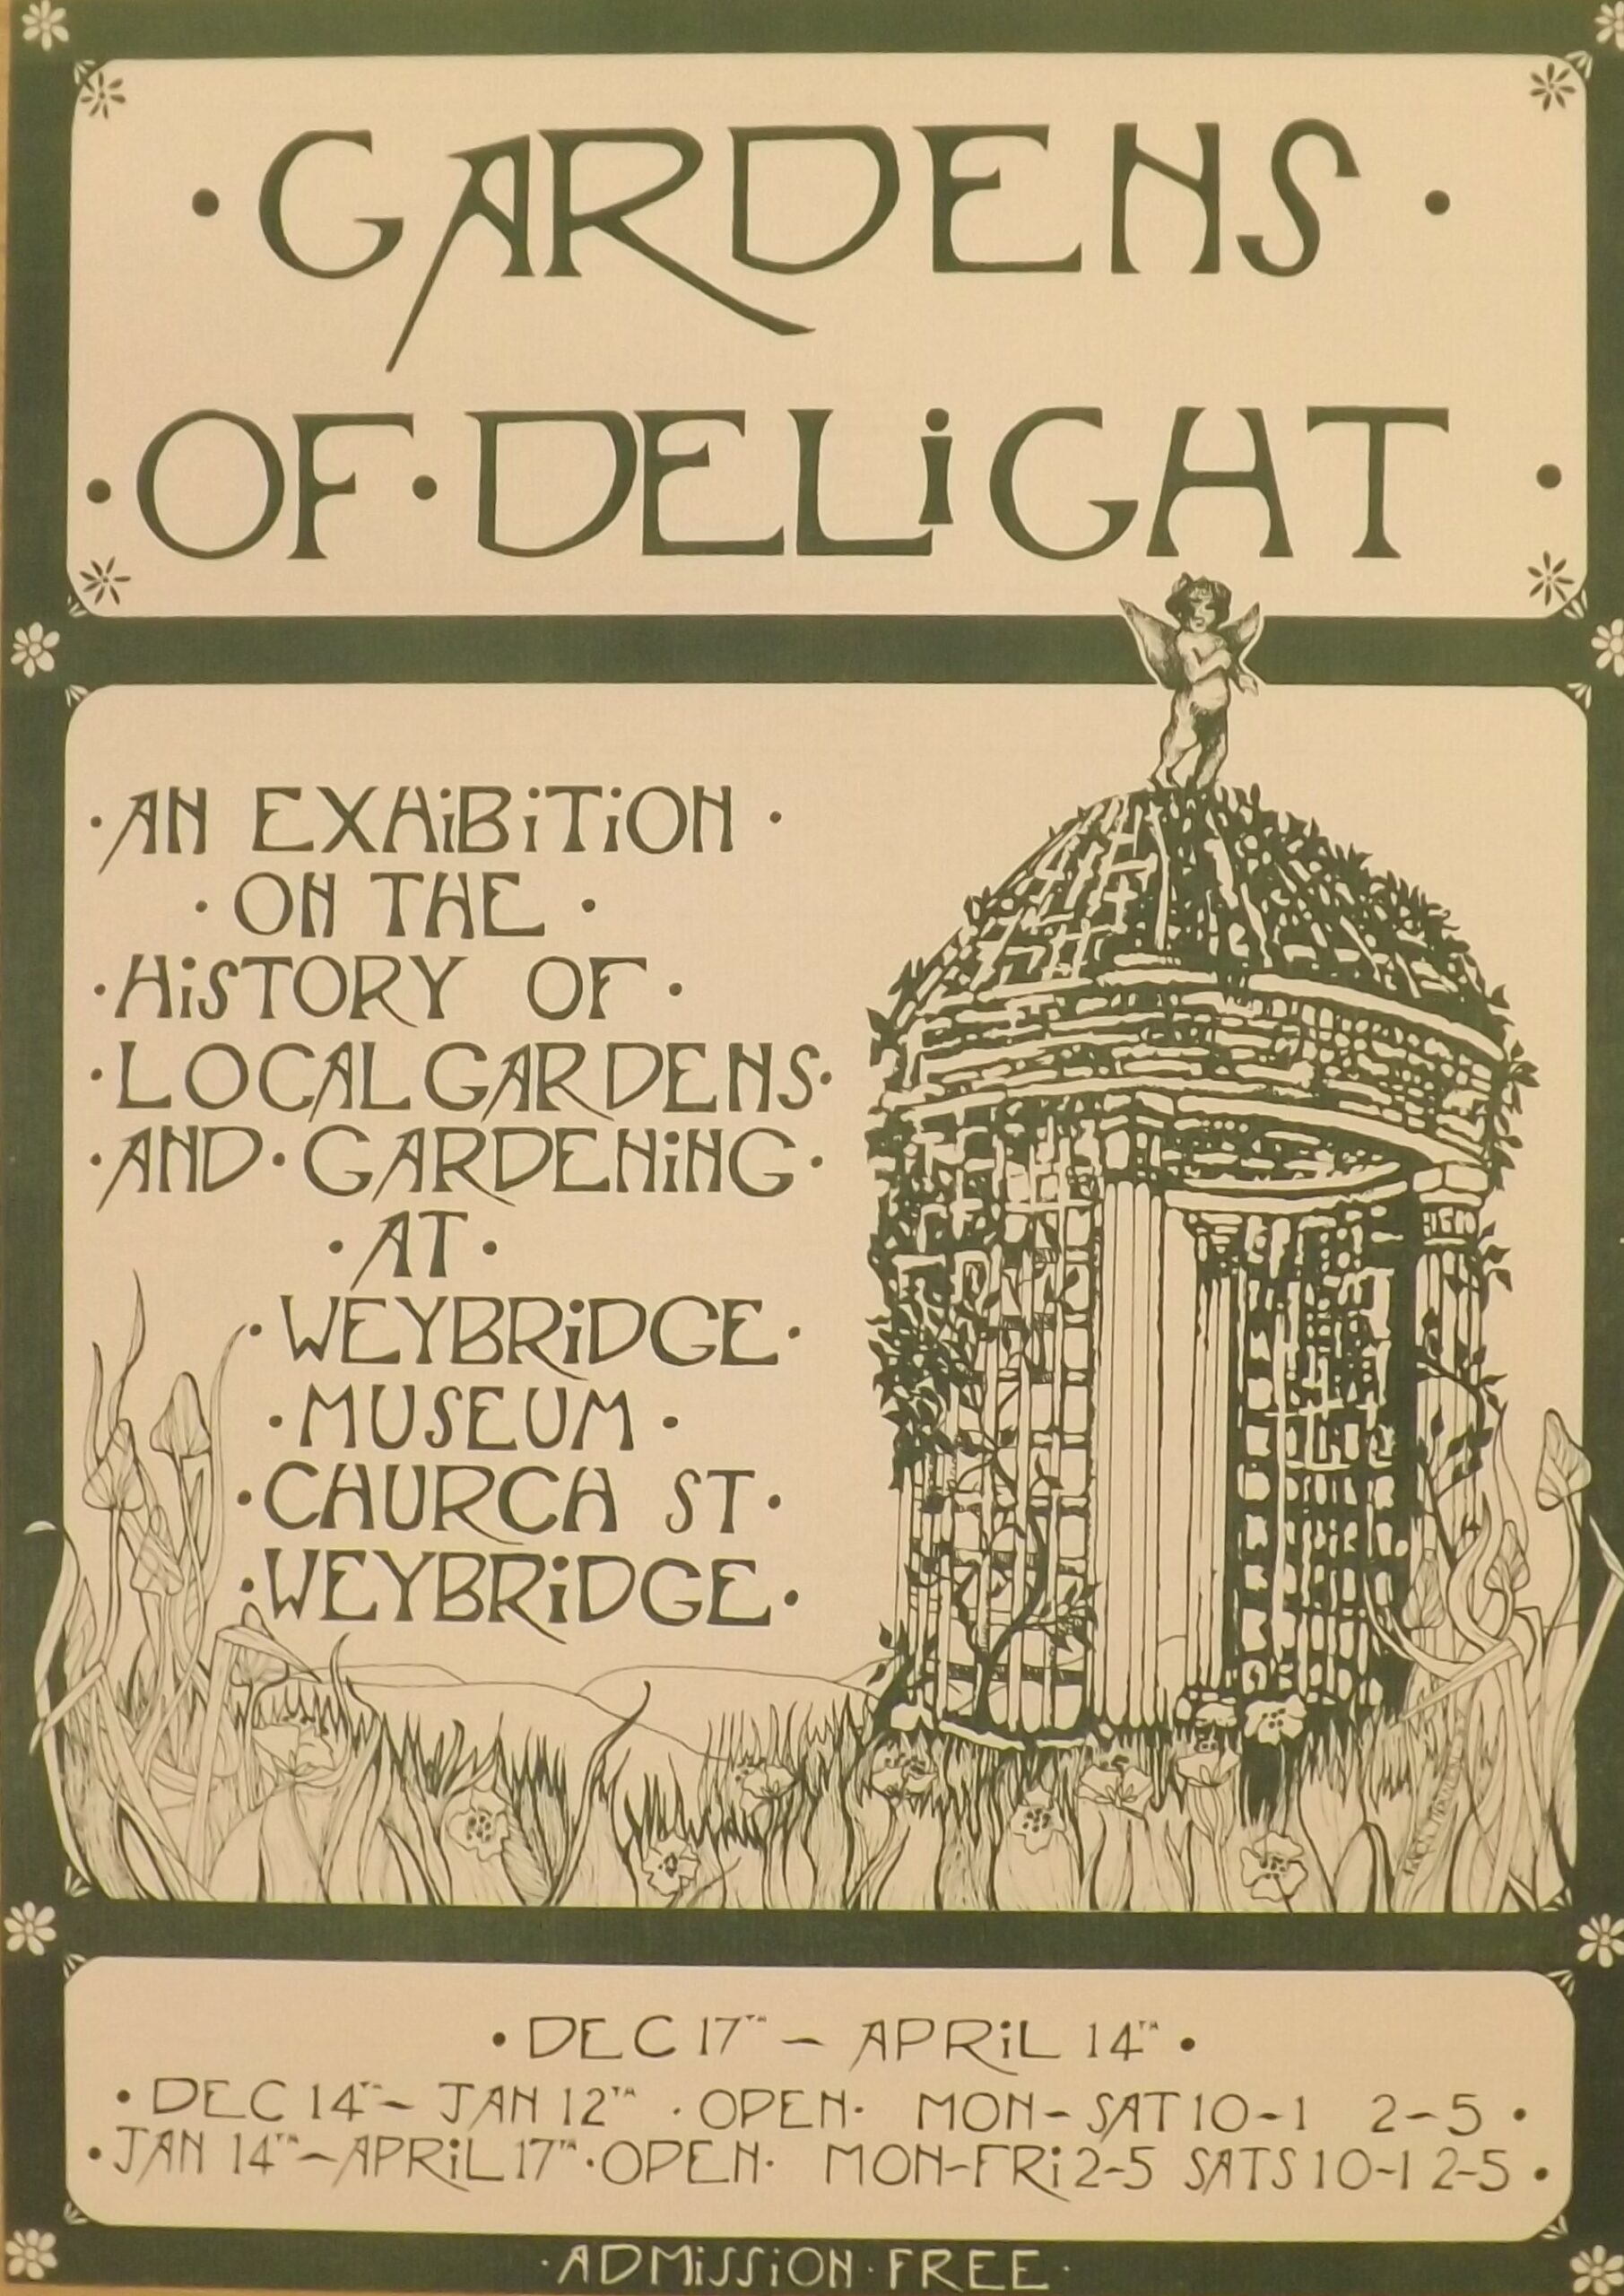 Museum poster from Weybridge Museum (now Elmbridge Museum) advertising their 'Gardens of Delight' exhibition c.1980s, in their former gallery space above Weybridge Library, Church Street.